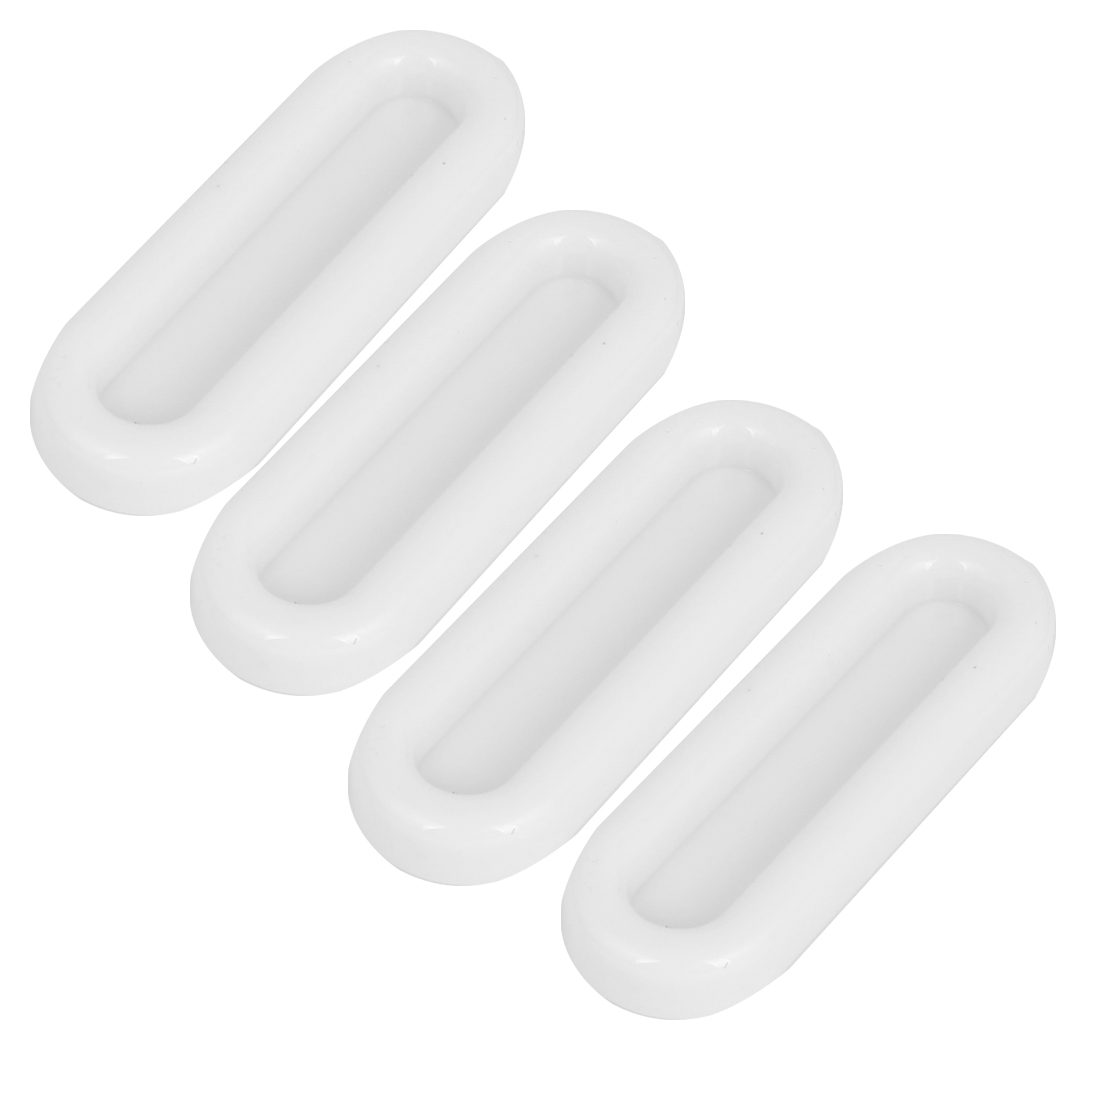 4PCS White ABS Self-adhesive Window Chest Cupboard Handle Puller Hardware